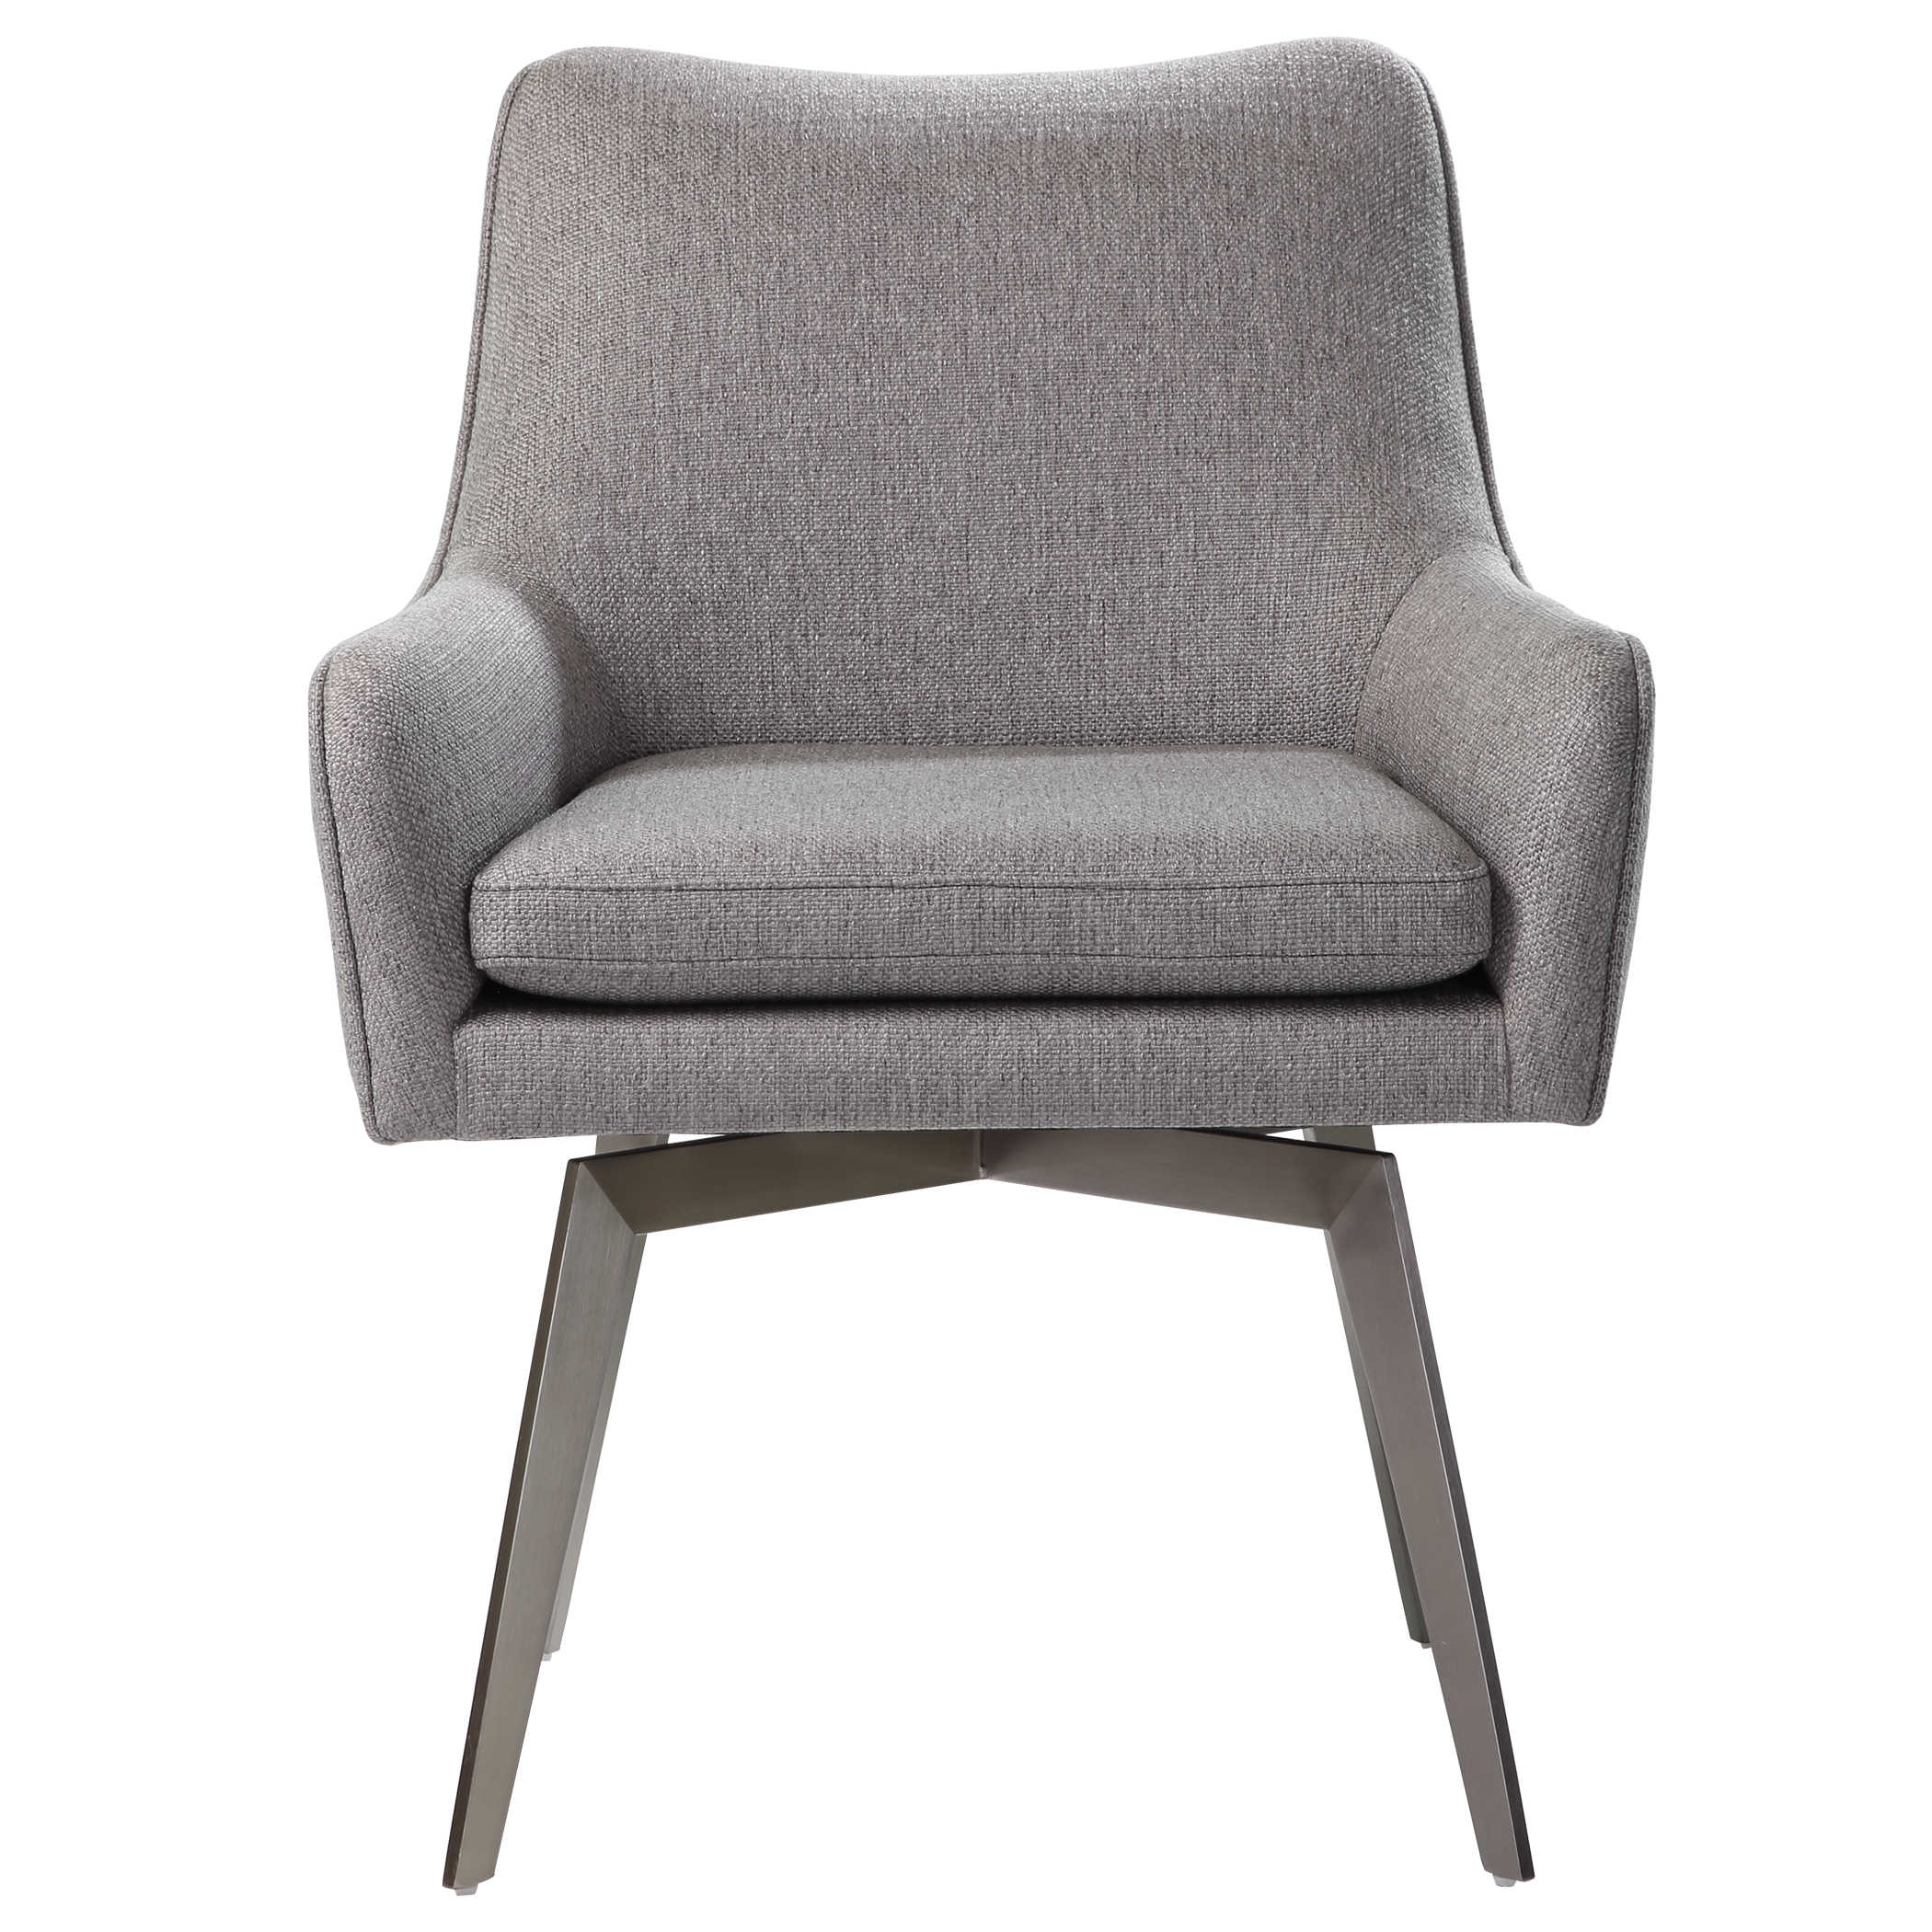 Grey Swivel Chair-$689.00